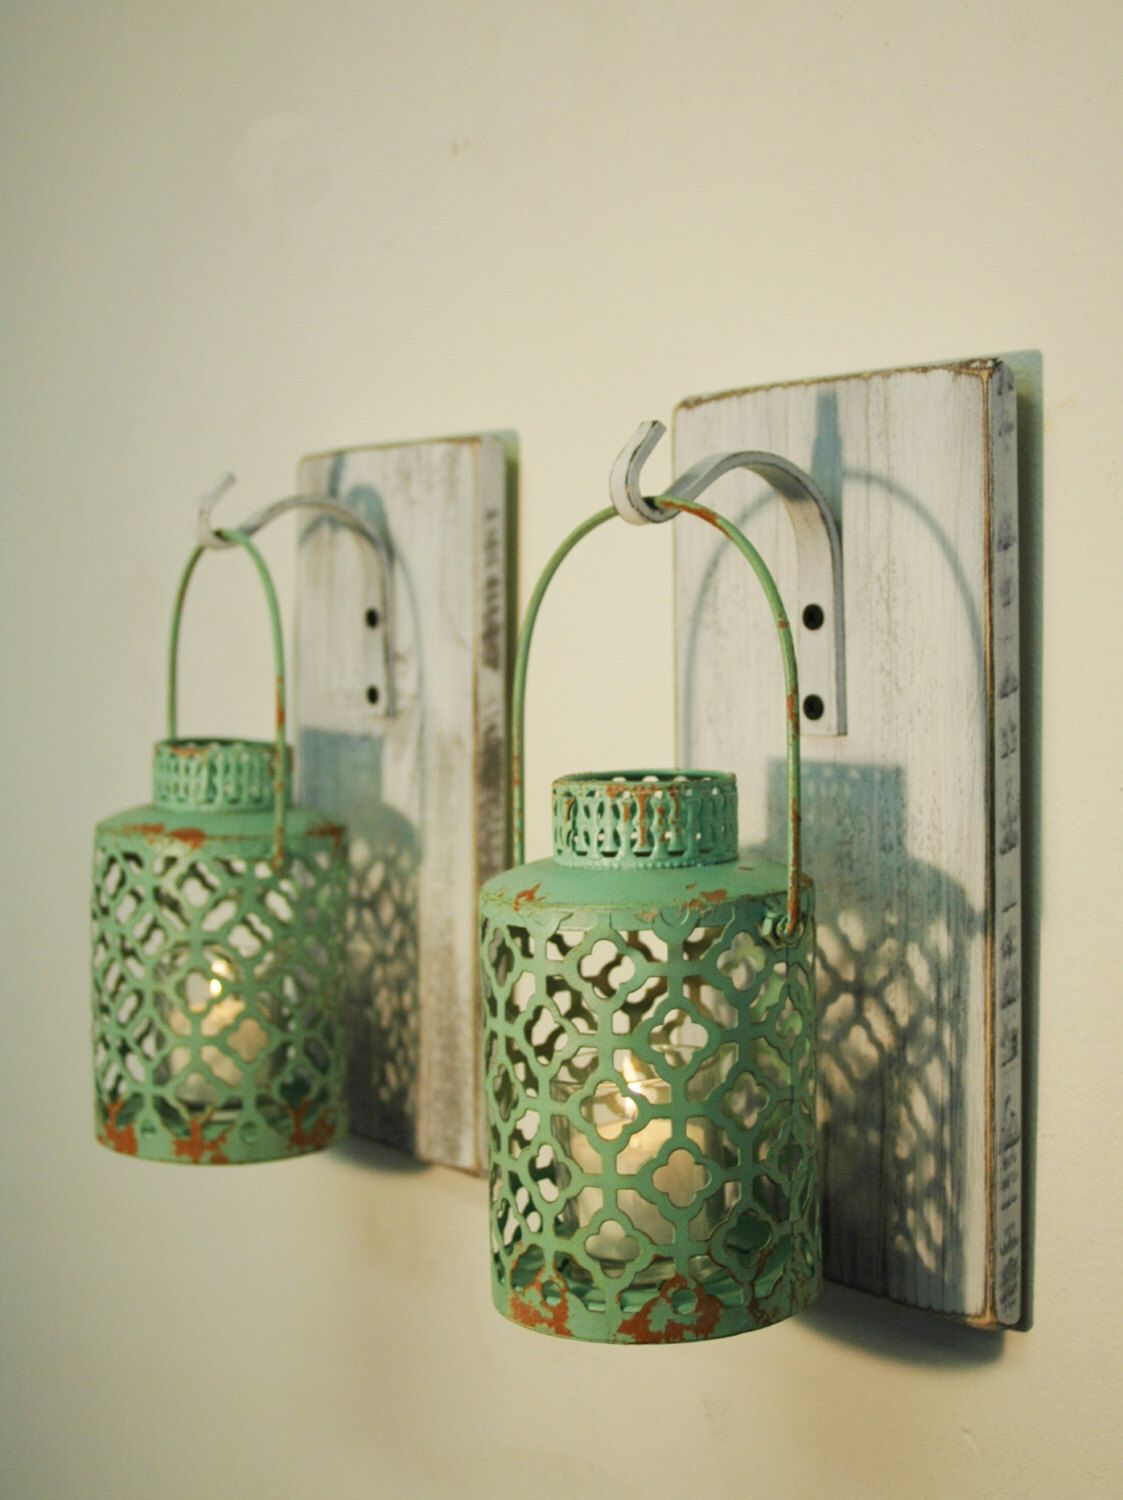 Shabby Chic Turquoise Lantern Pair CANDLES INCLUDED, whitewashed wood, home decor, bedroom decor, lantern wall decor, shabby lantern set by PineknobsAndCrickets on Etsy https://www.etsy.com/listing/224969474/shabby-chic-turquoise-lantern-pair